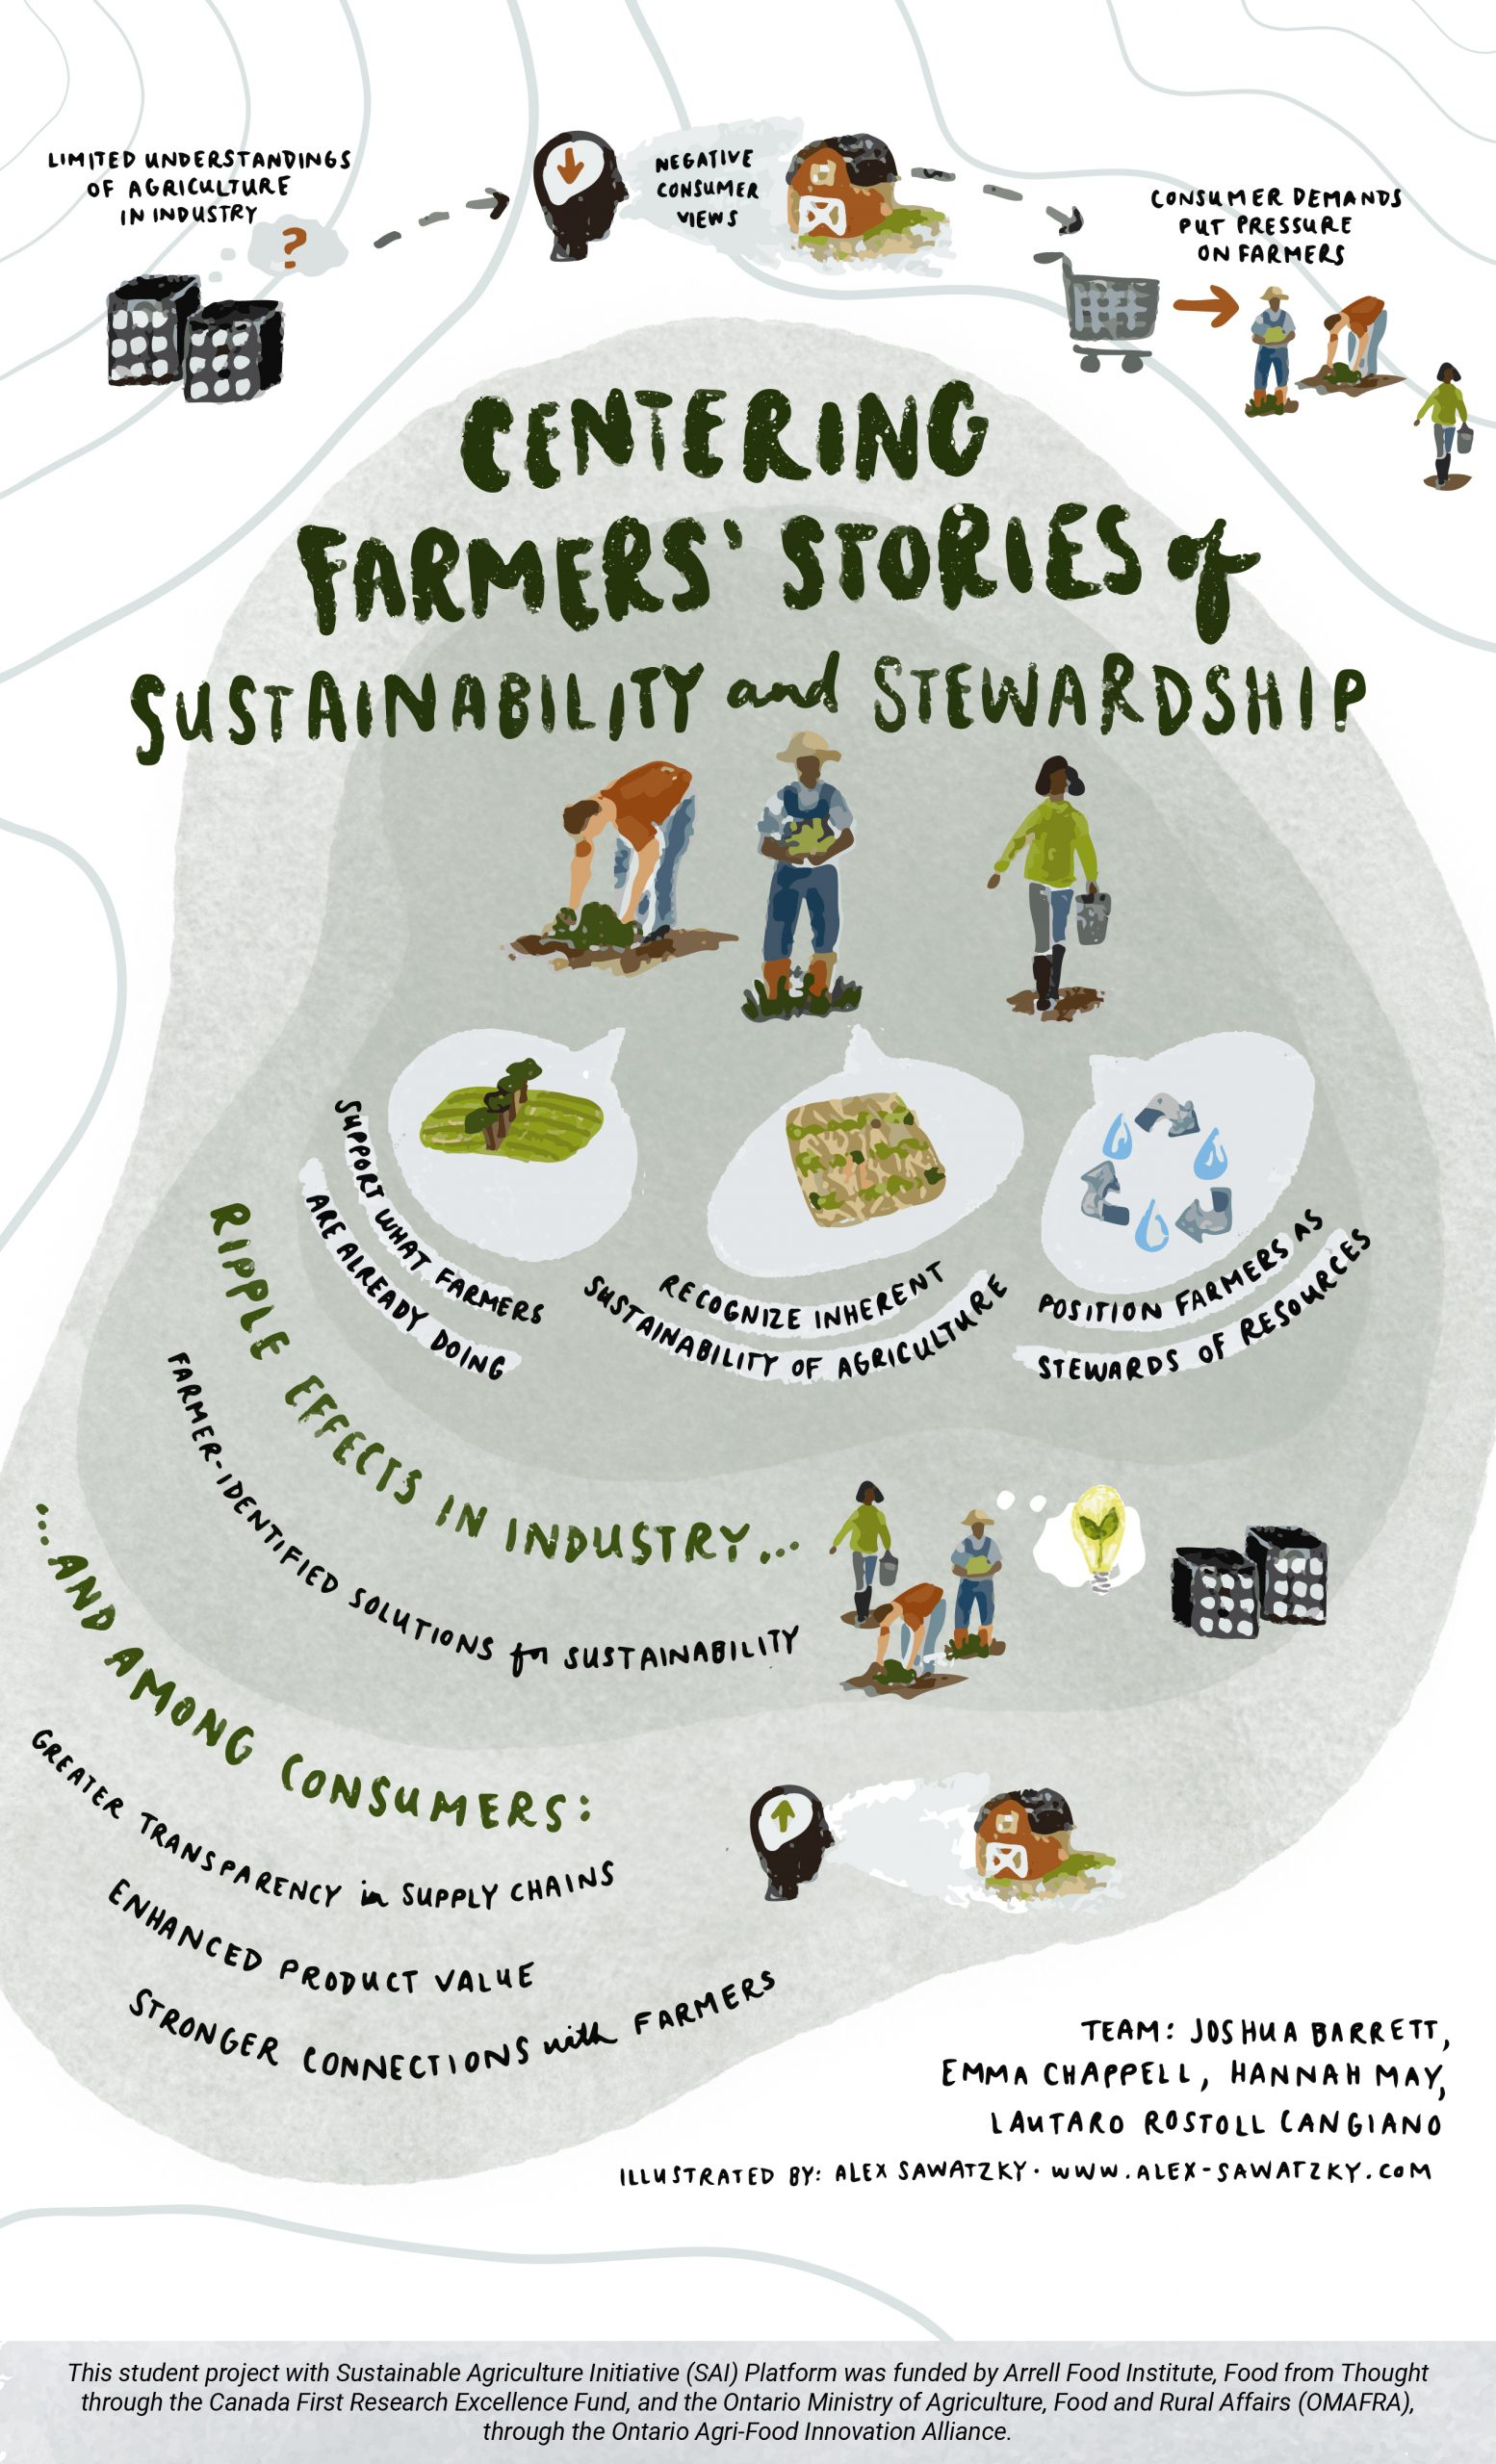 A student team working with SAI Platform conducted interviews with sustainability managers, farmers and other actors at every level of the supply chain to compile positive examples to showcase the capacity of farming to be part of the conducted.